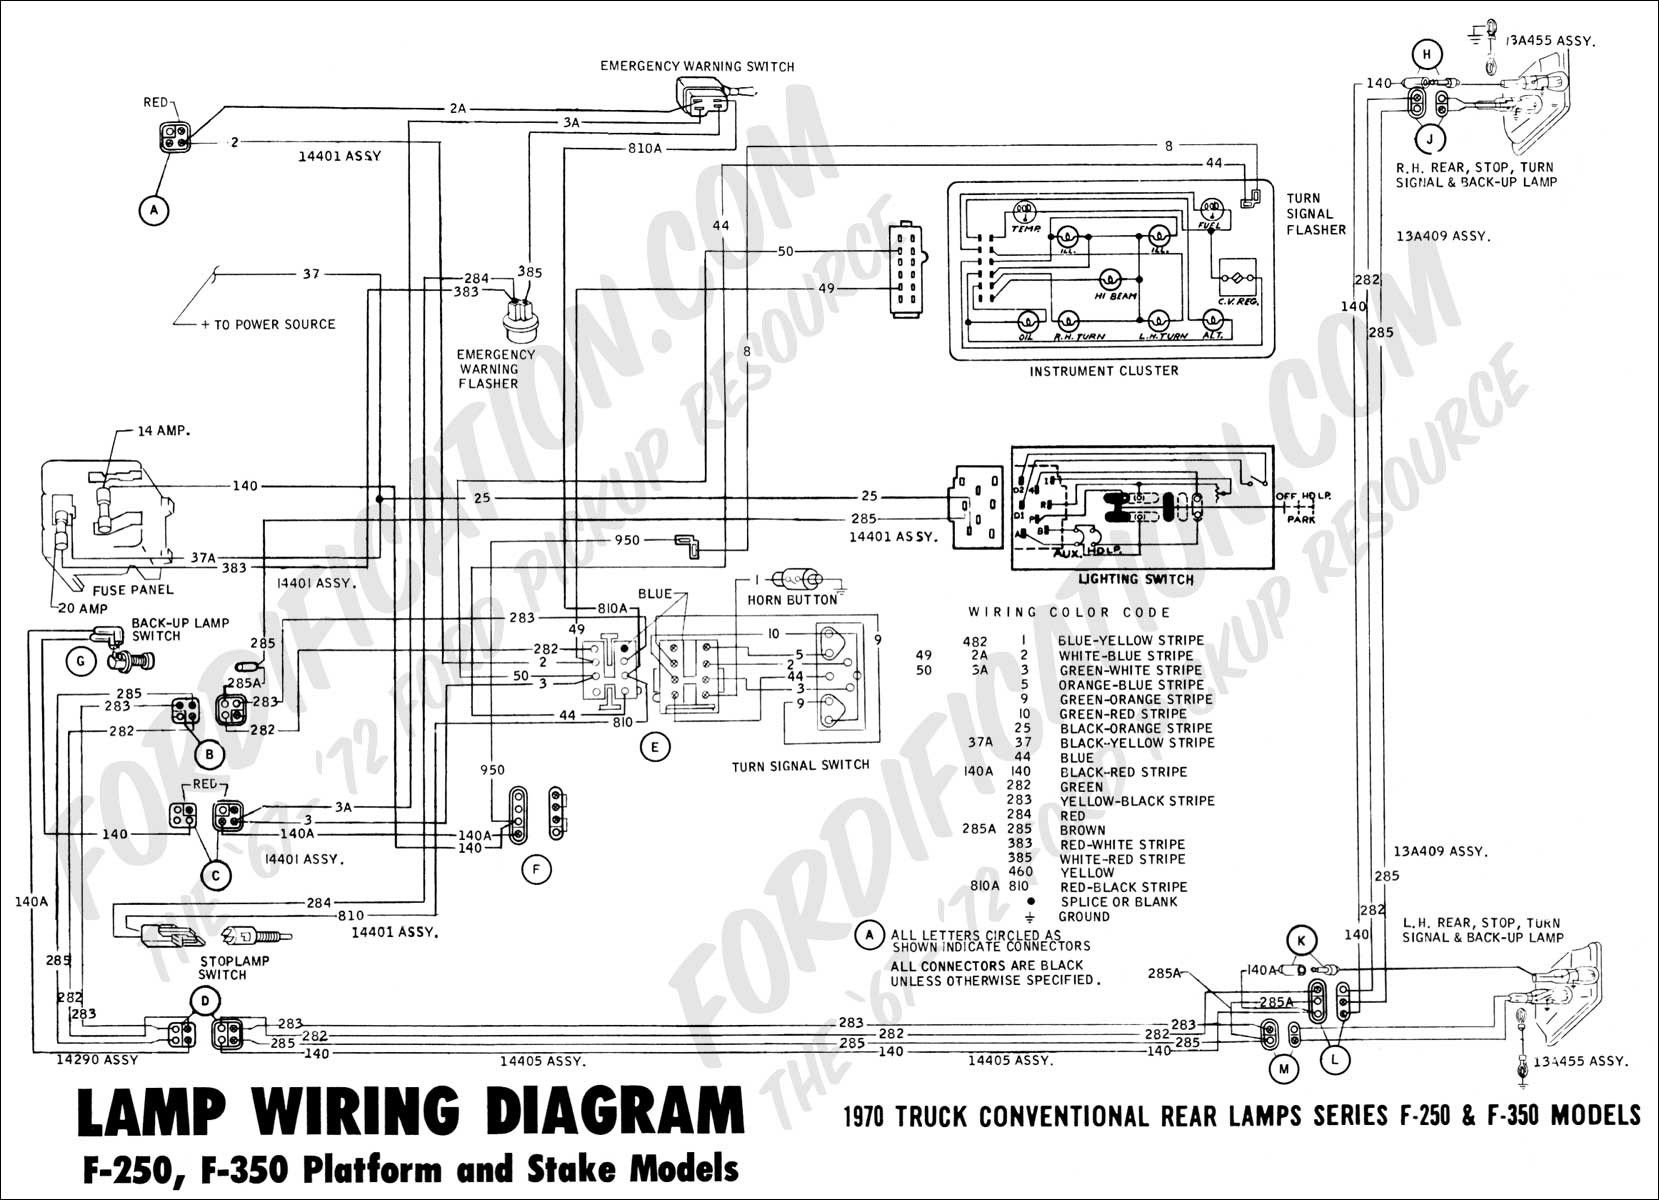 New Need Wiring Diagram #diagram #wiringdiagram #diagramming #Diagramm  #visuals #visualisation #graphical Check more at https:… | Diagram, Ford  f250, Ford lightning | Ford F 450 Headlight Wiring Diagram |  | Pinterest